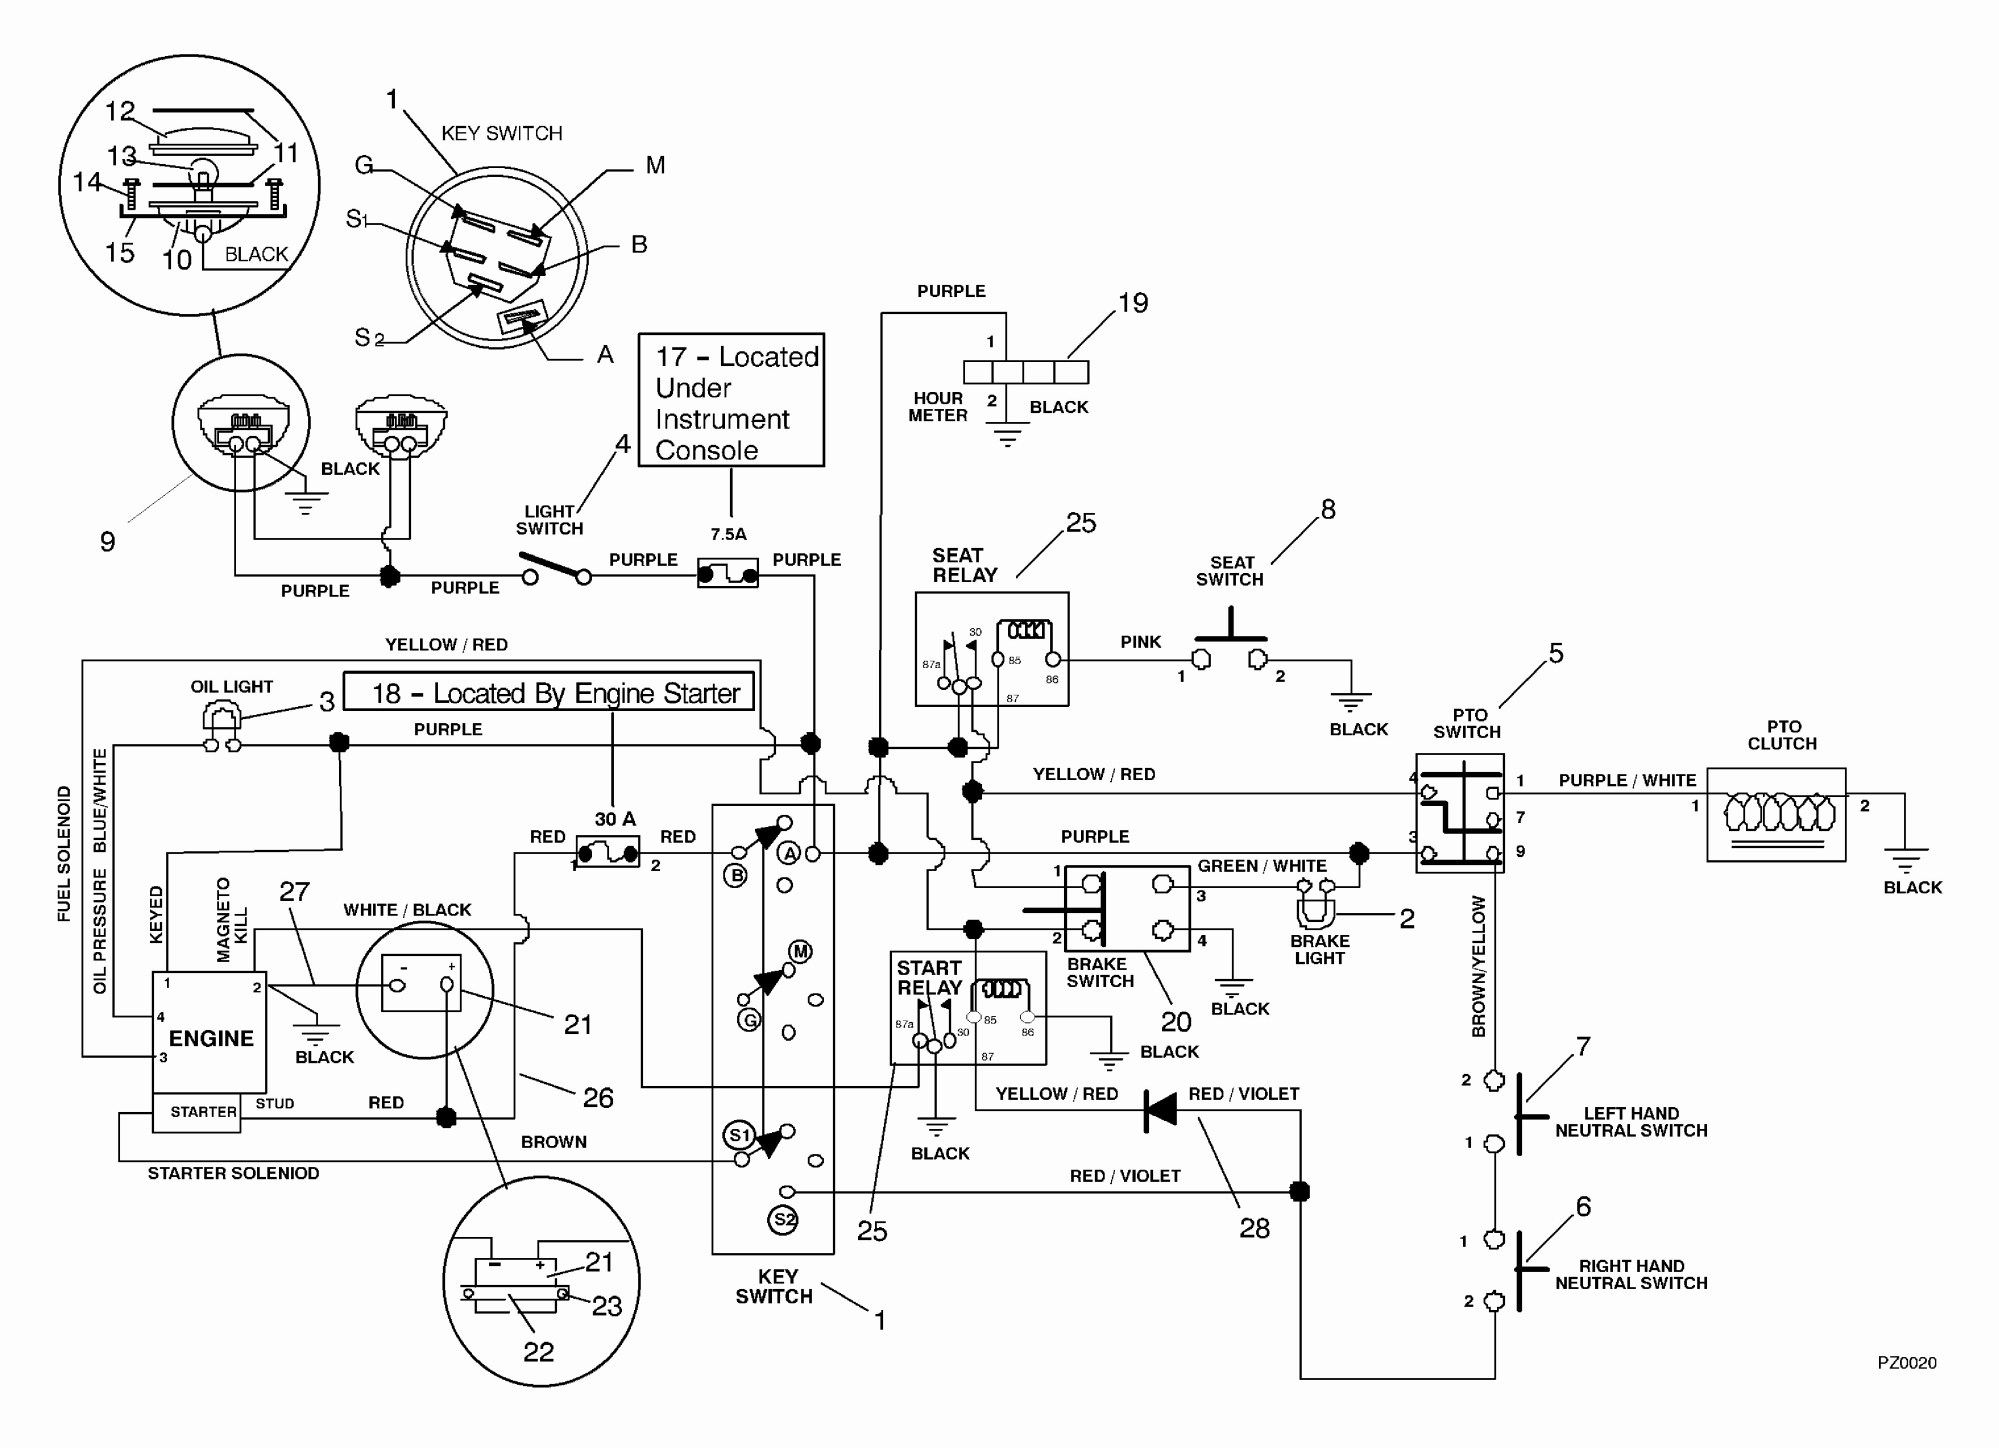 hight resolution of kohler rv generator wiring diagram wiring diagram databasekohler generator wiring diagram download